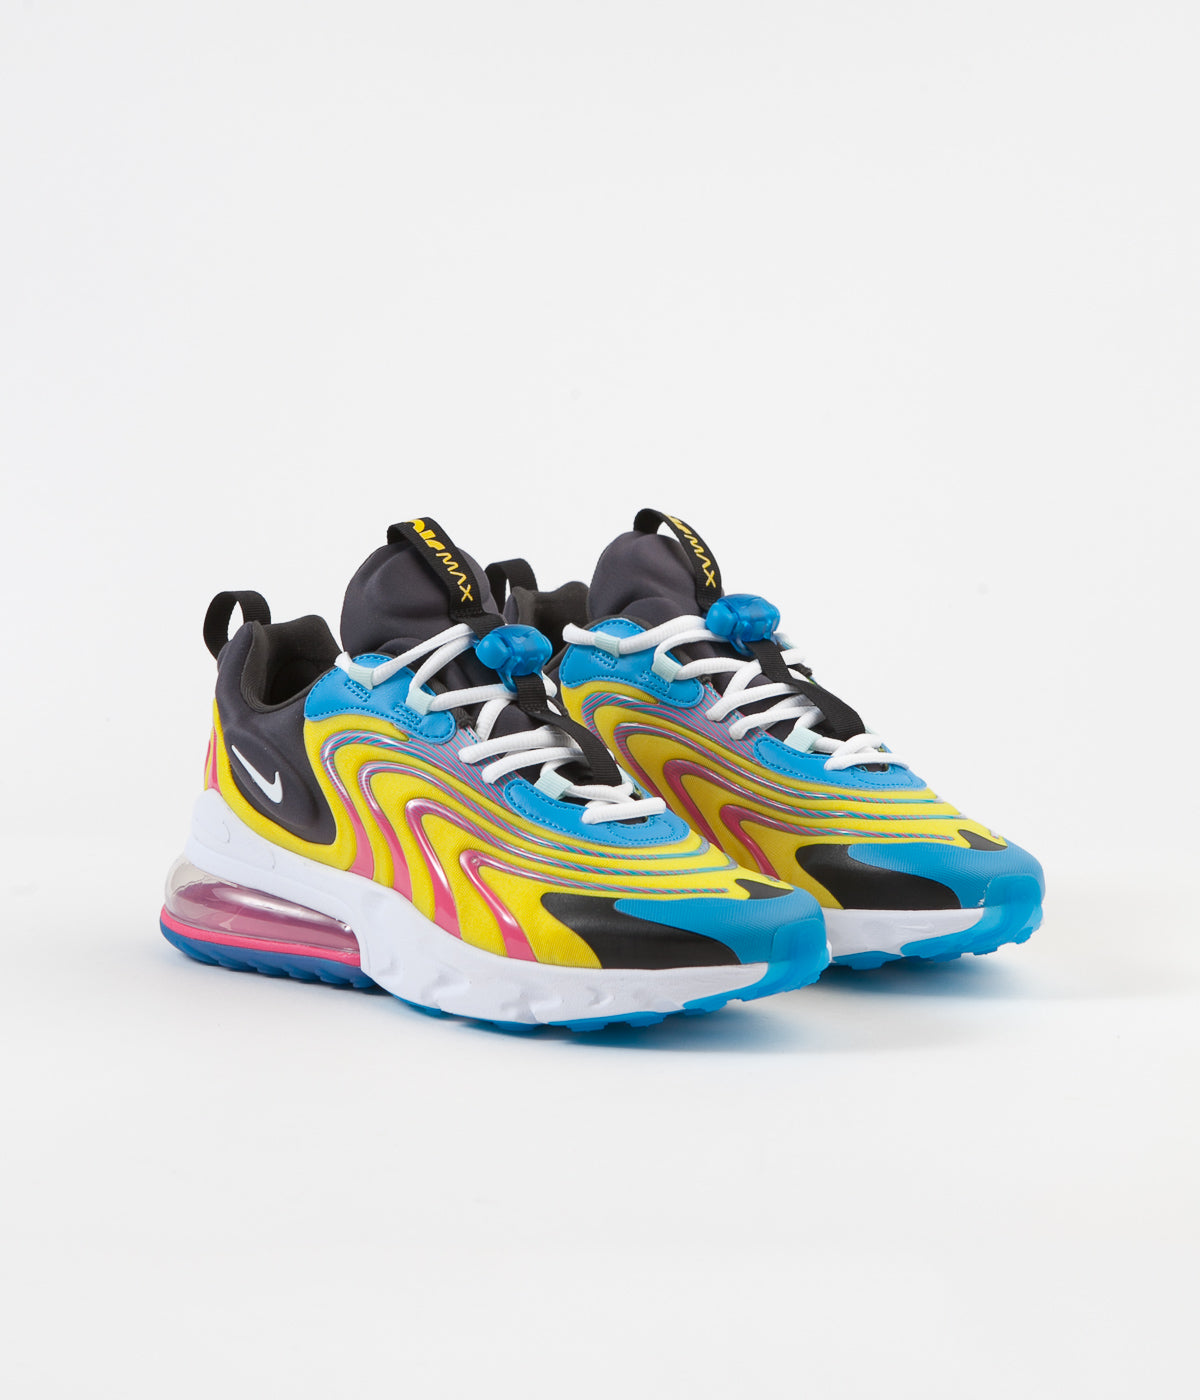 Nike Air Max 270 React Eng Shoes Laser Blue White Anthracite